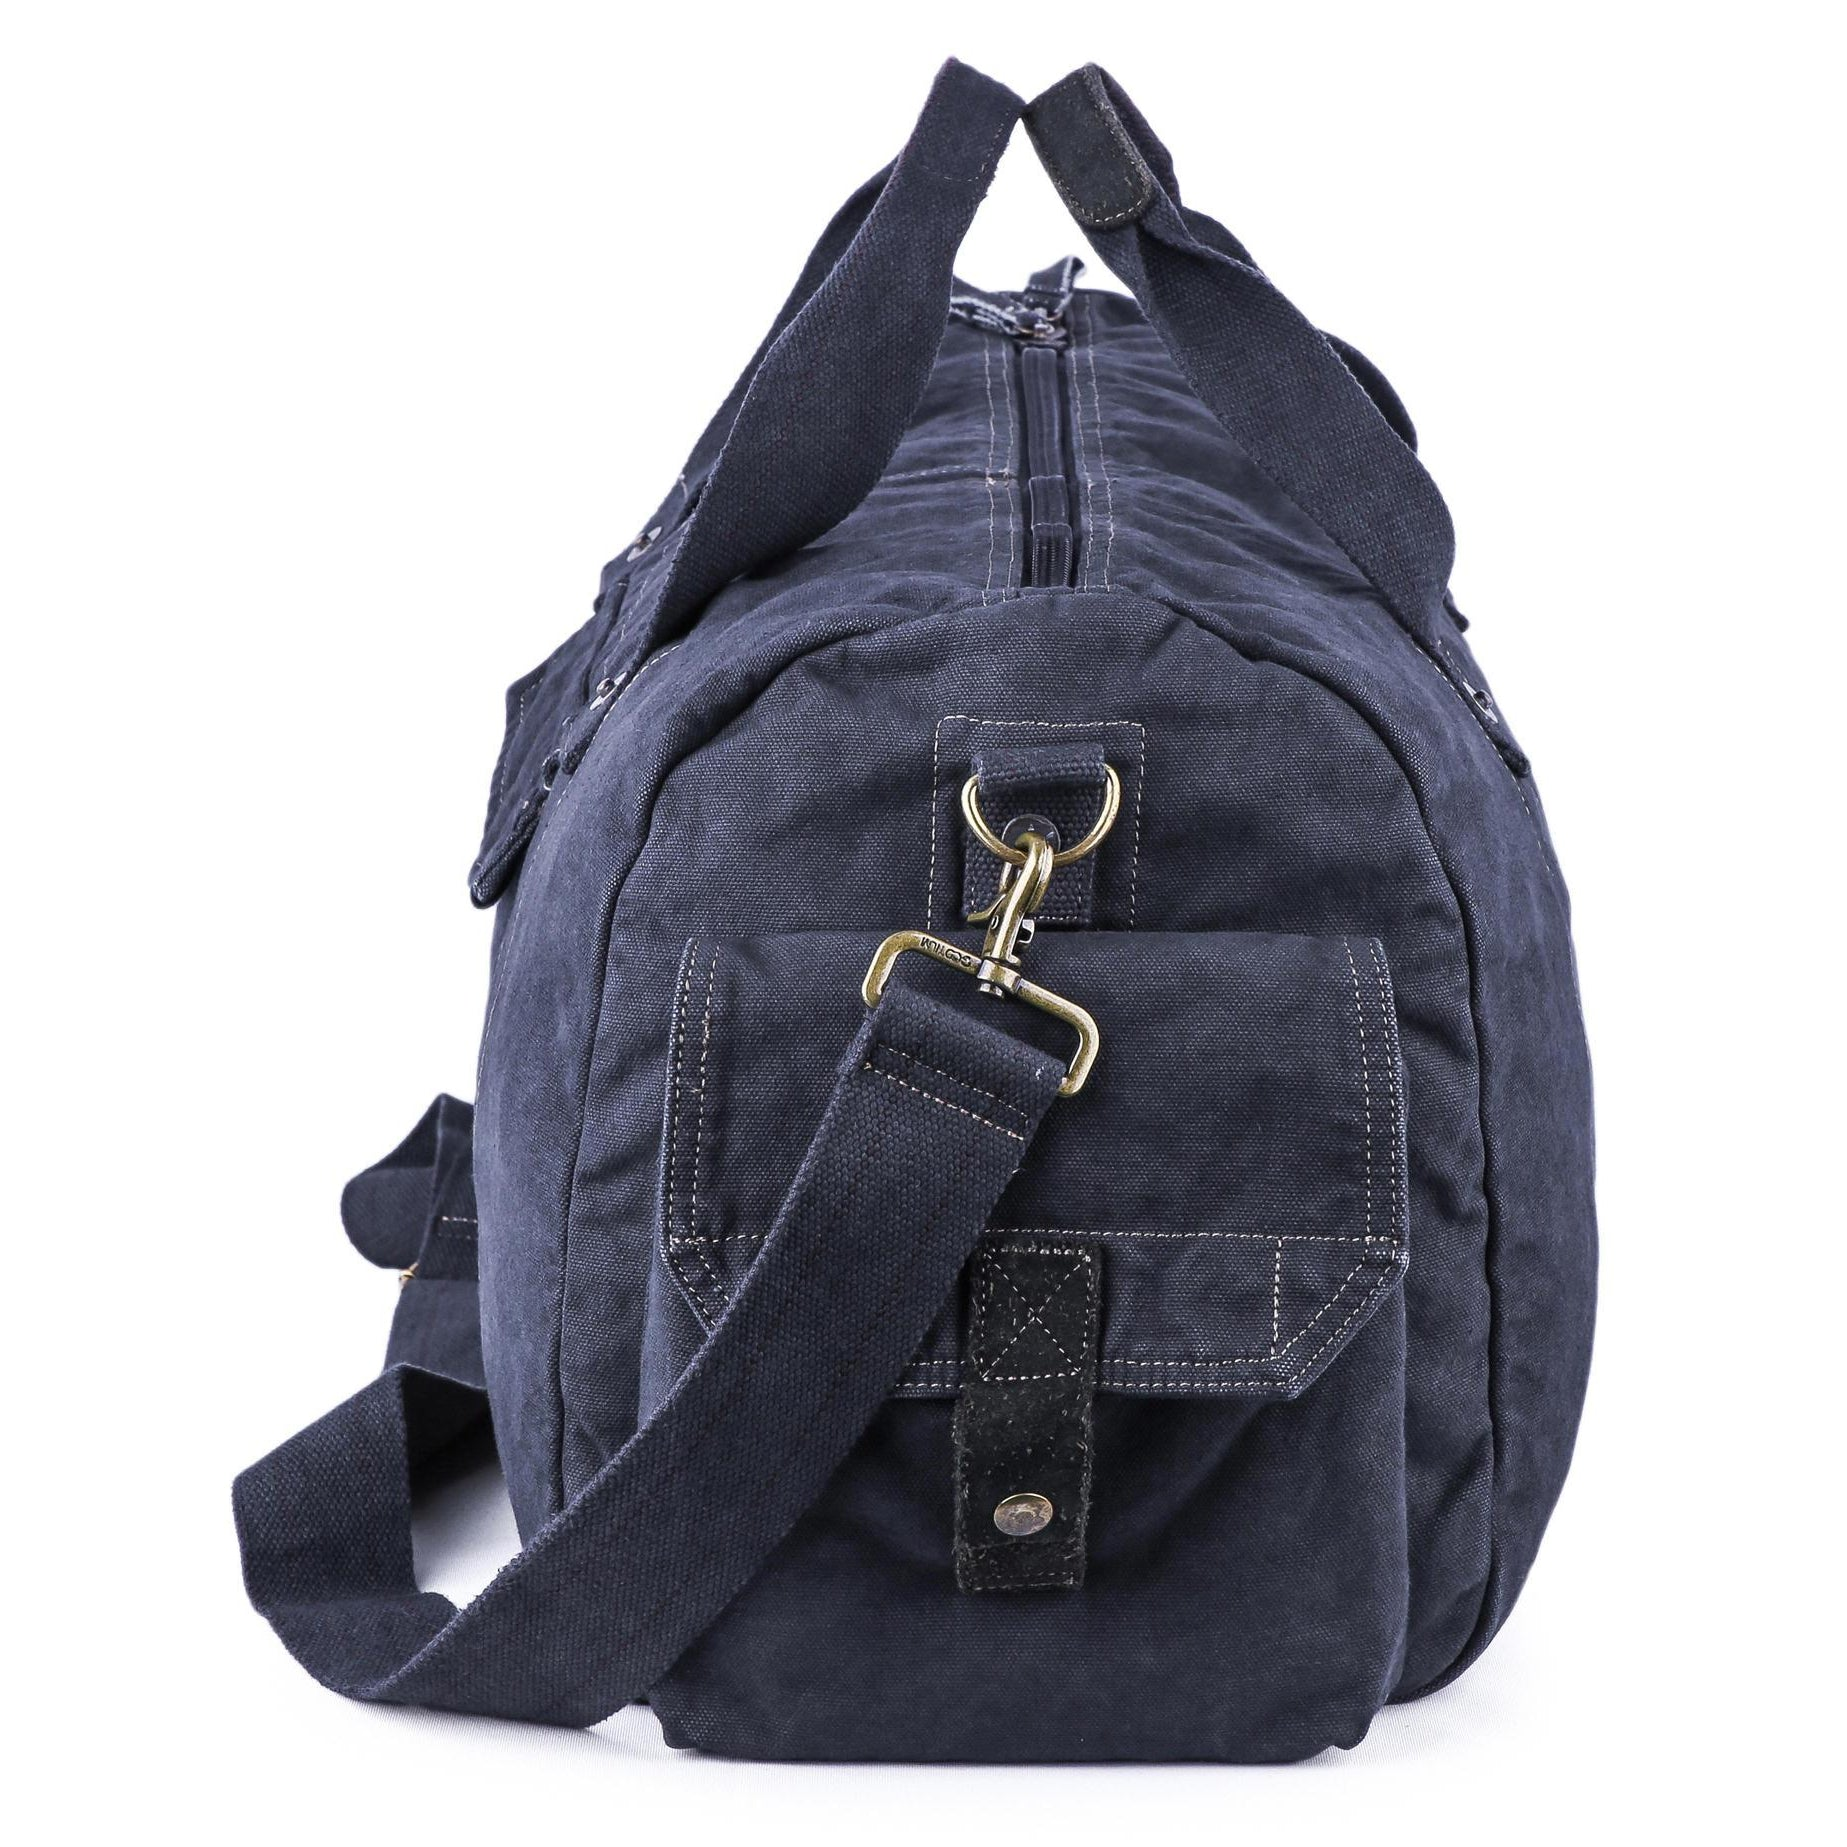 10 Best Canvas Duffle Bag - Gootium a2ea56a43567c